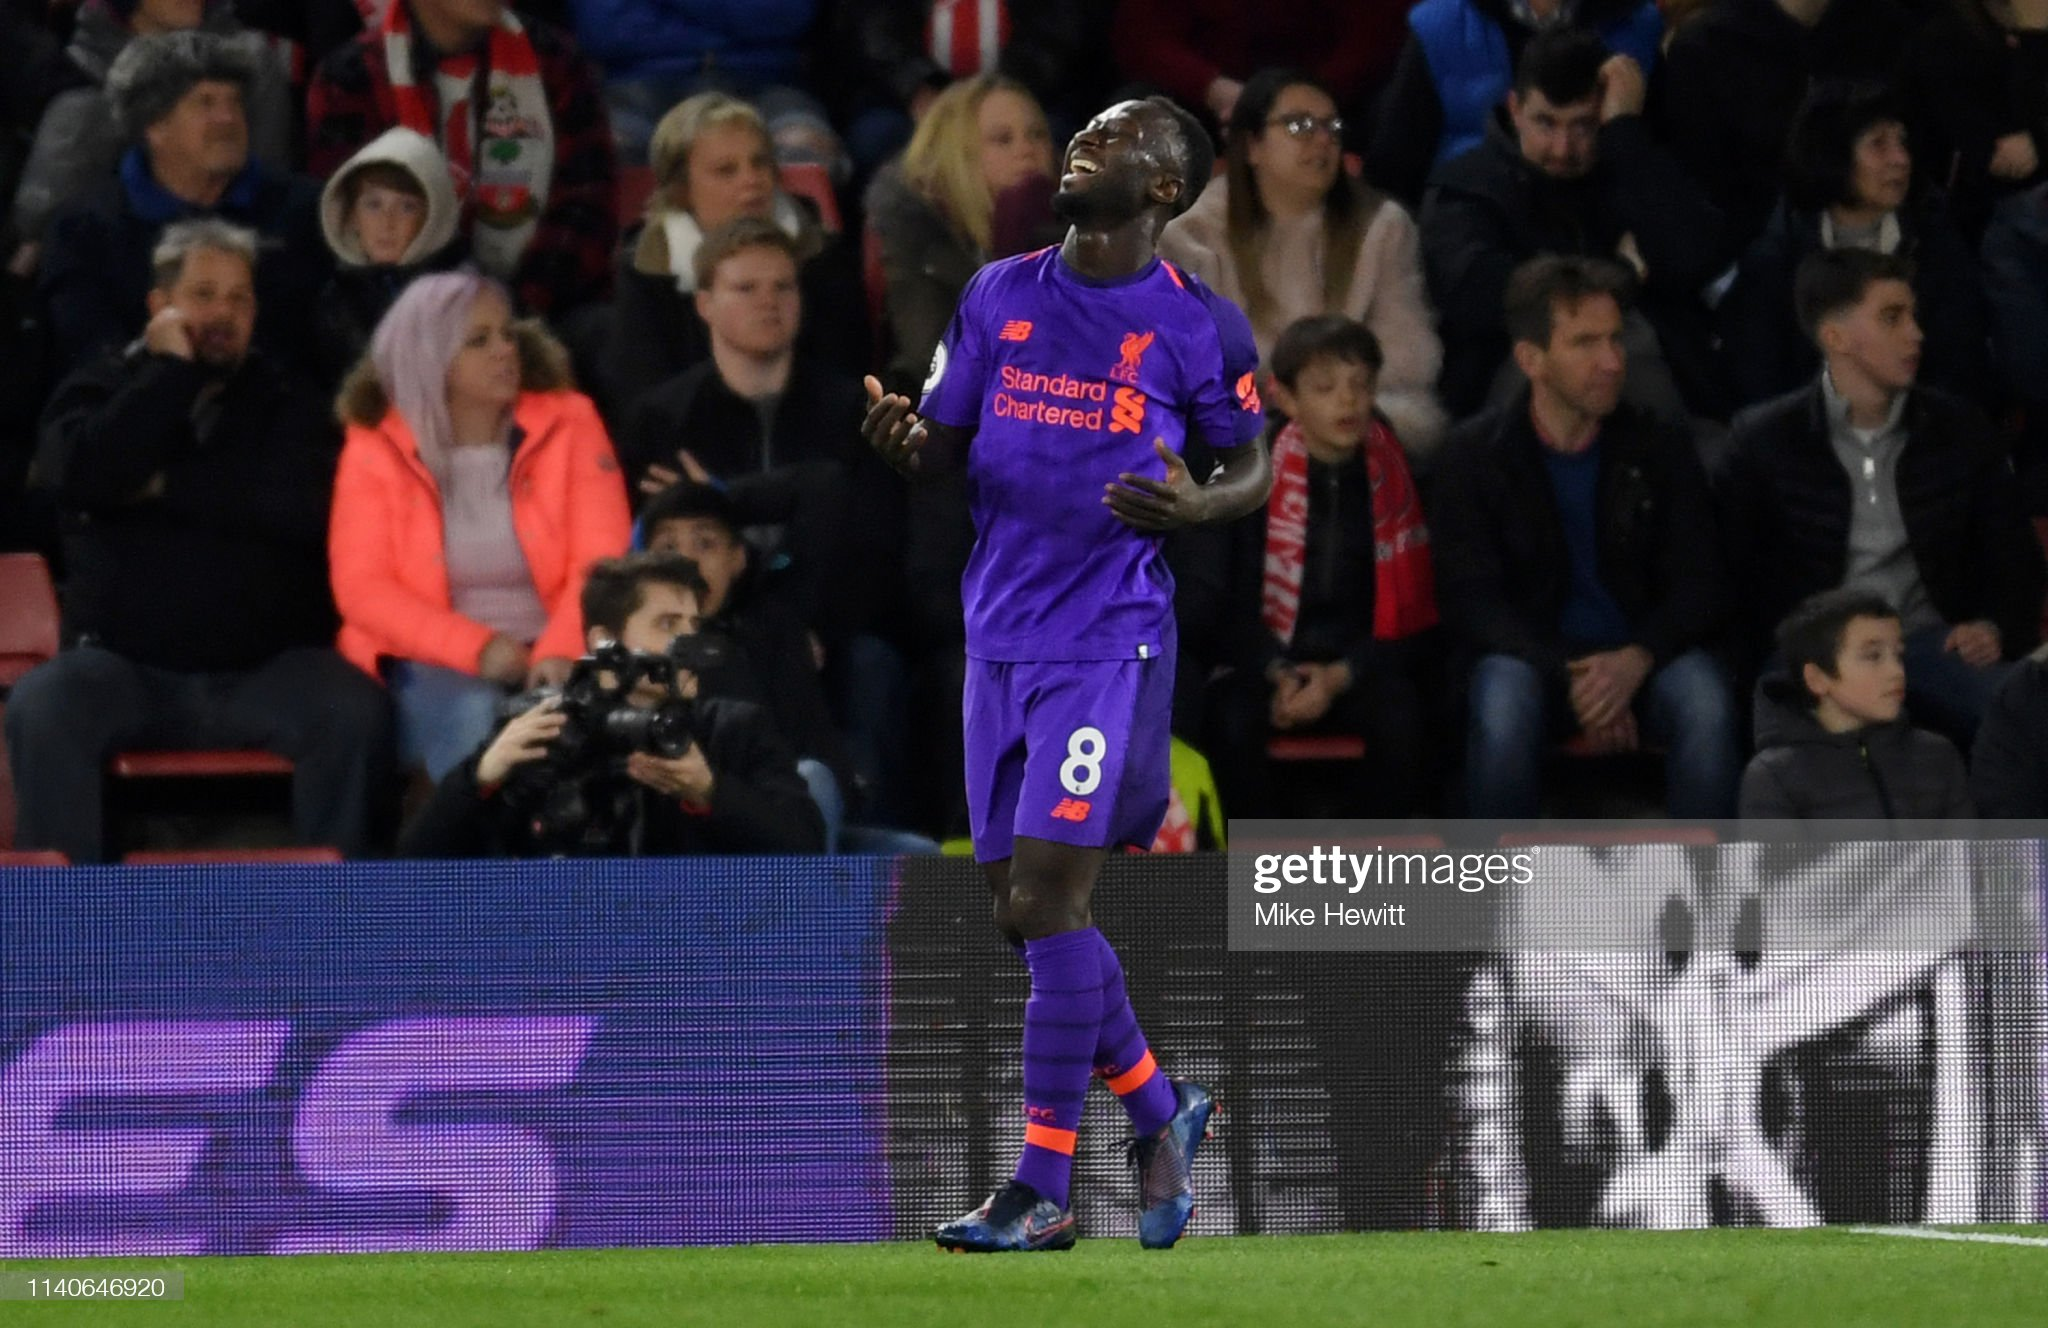 Southampton FC v Liverpool FC - Premier League : News Photo